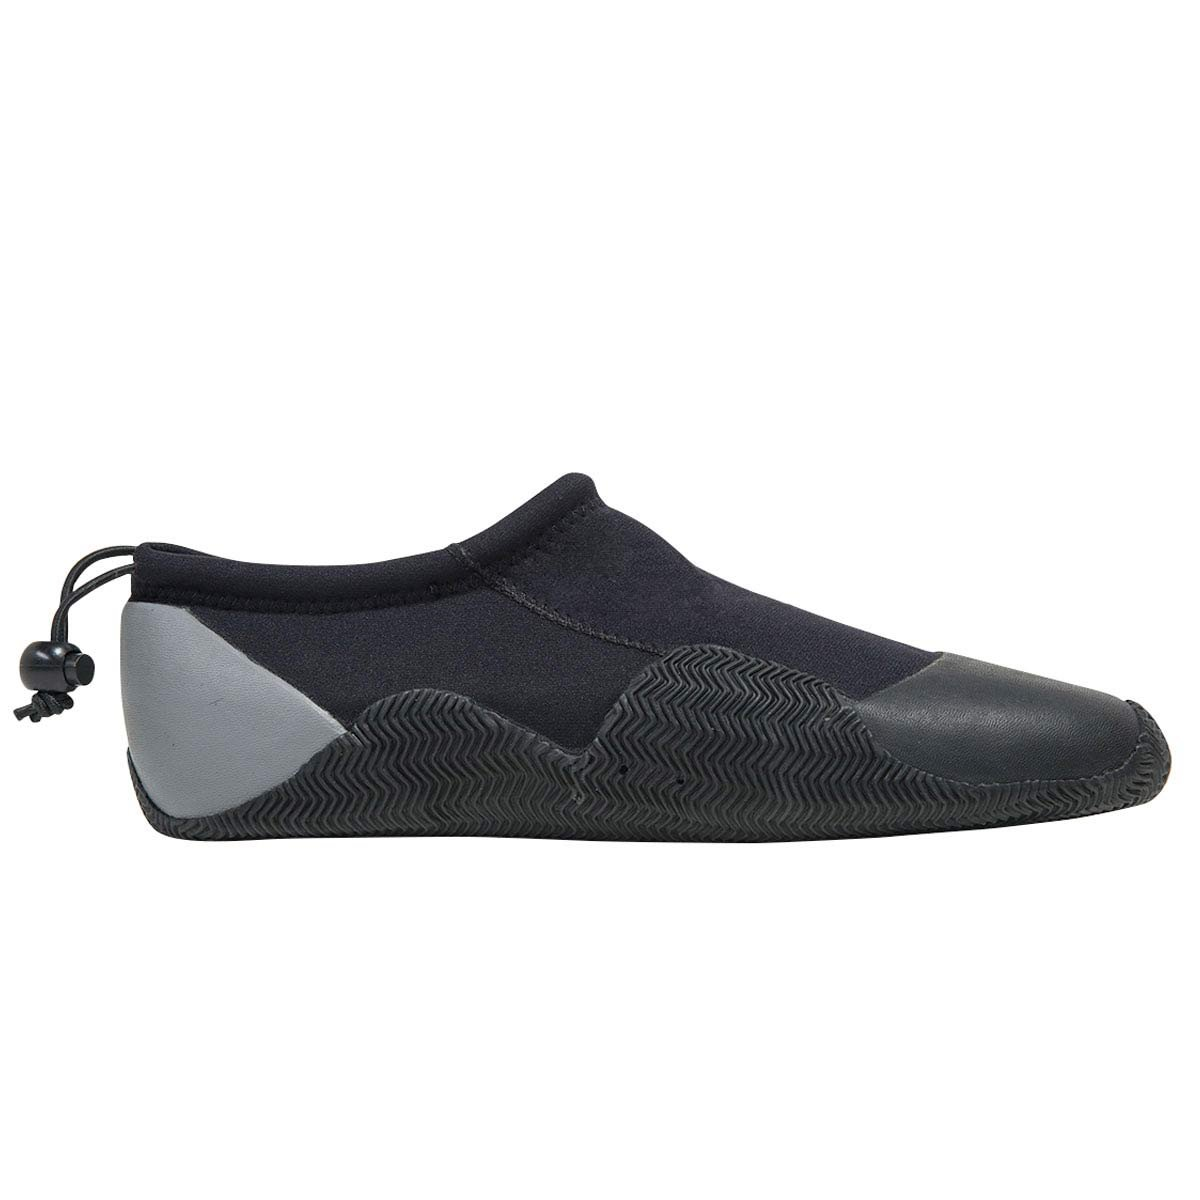 31ff0058e782 Gul 3mm Blindstitched Wetsuit Power Shoes  Amazon.co.uk  Sports   Outdoors